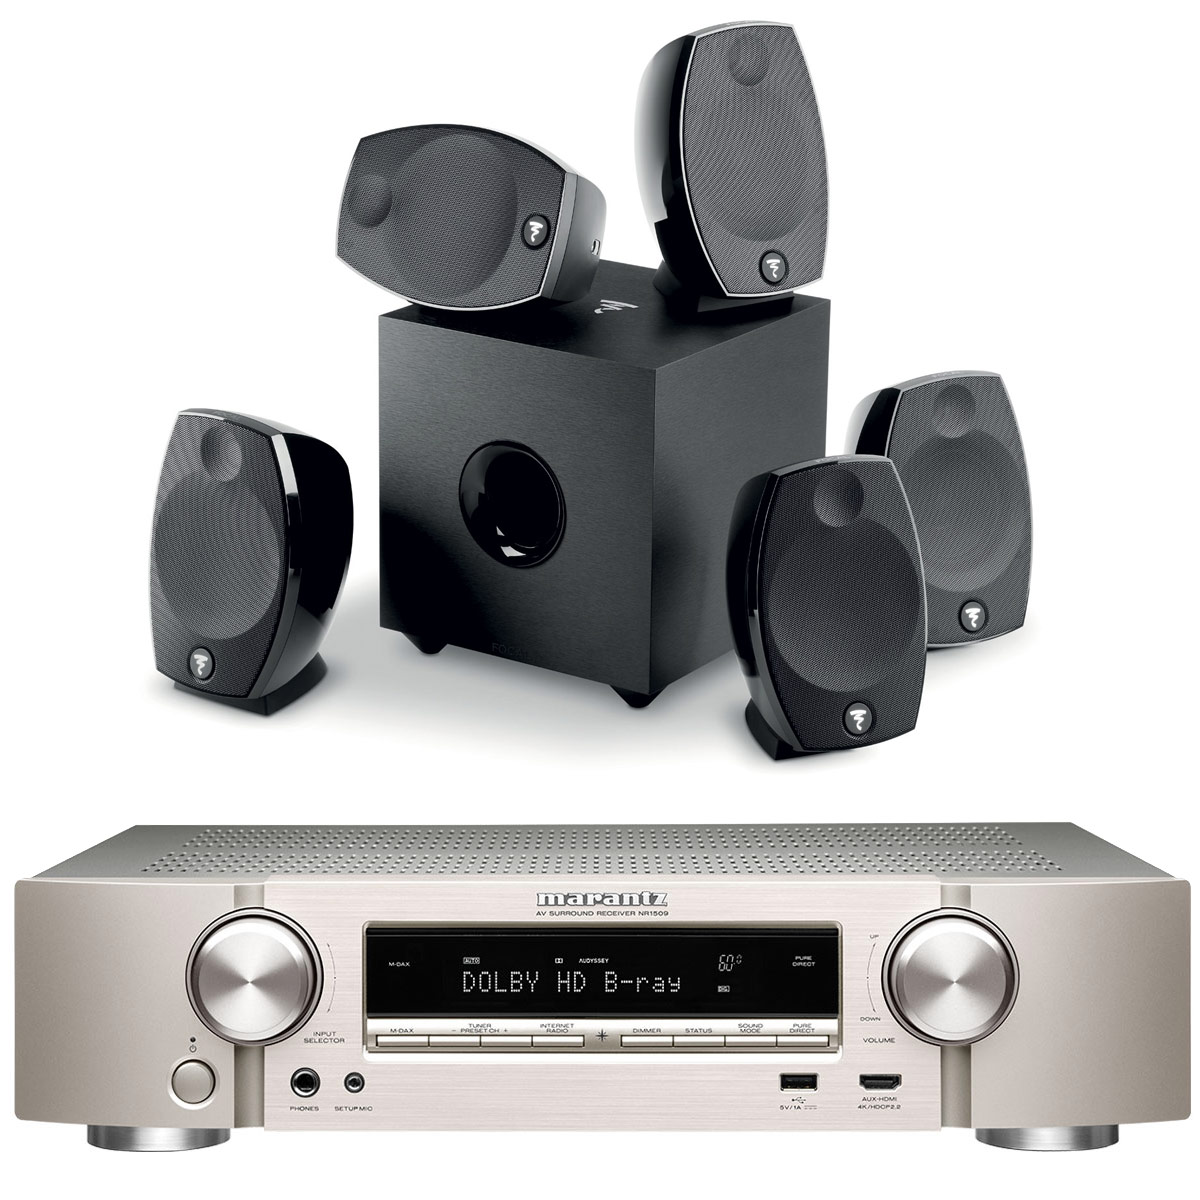 Ensemble home cinéma Marantz NR1509 Argent/Or + Focal Sib Evo 5.1 Ampli-tuner Home Cinema Slim 3D Ready 5.2 - Dolby TrueHD / DTS-HD Master Audio - 6x HDMI 4K UHD, HDCP 2.2, HDR - Multiroom - Wi-Fi/Bluetooth/AirPlay 2 - Amazon Alexa + Pack d'enceintes 5.1